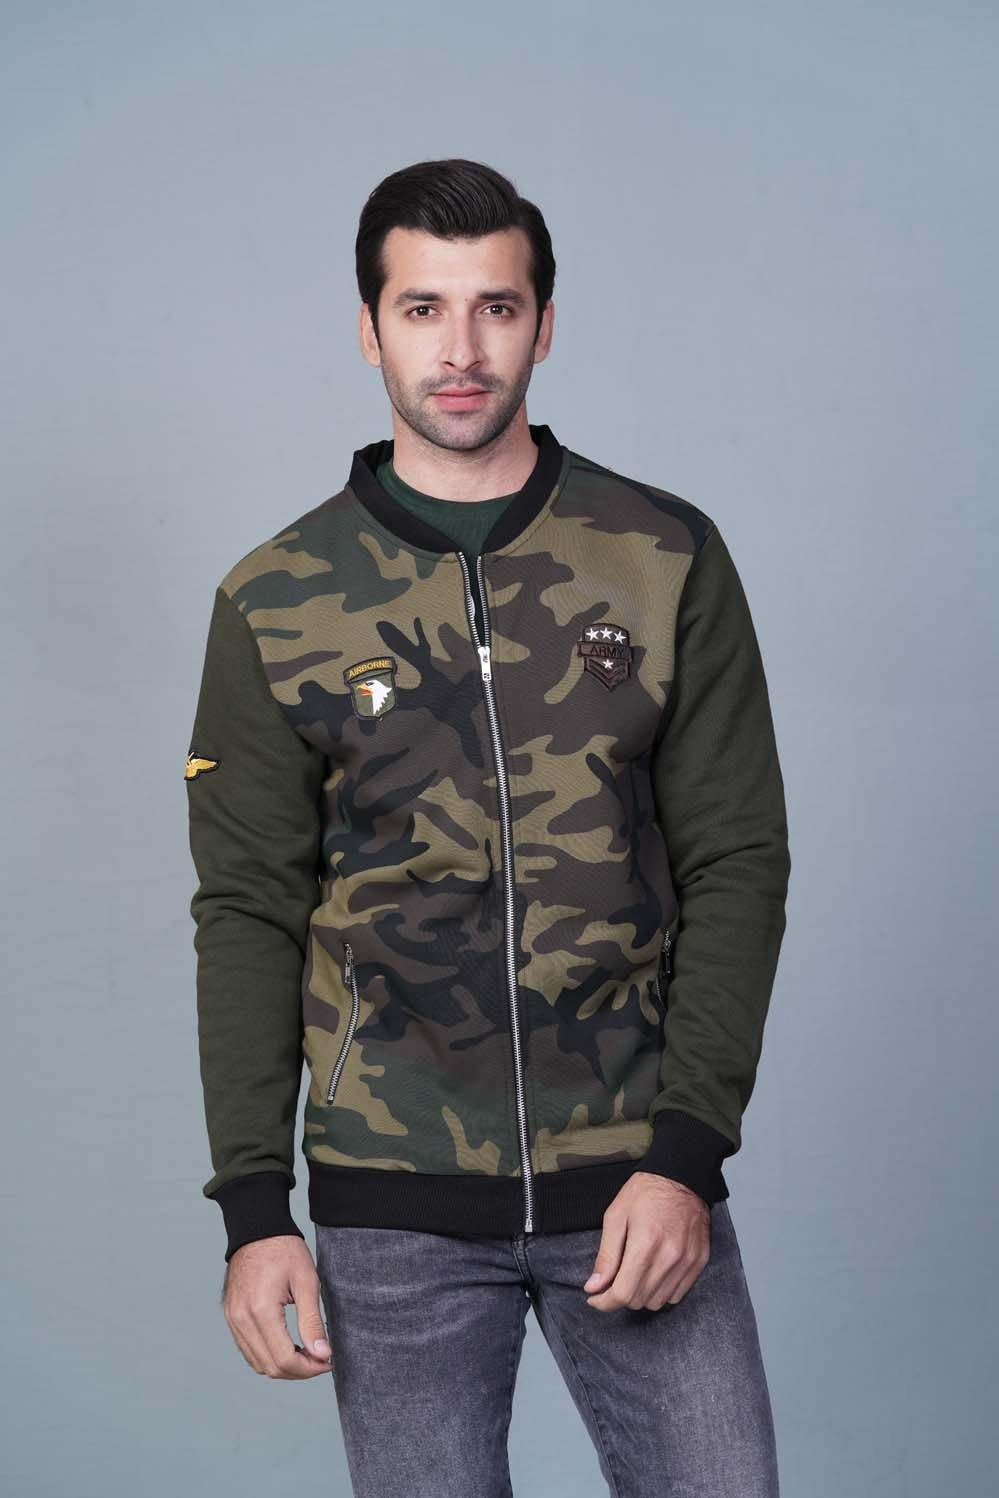 Green camo Varsity Jacket HMVSF20231 - HOPE NOT OUT